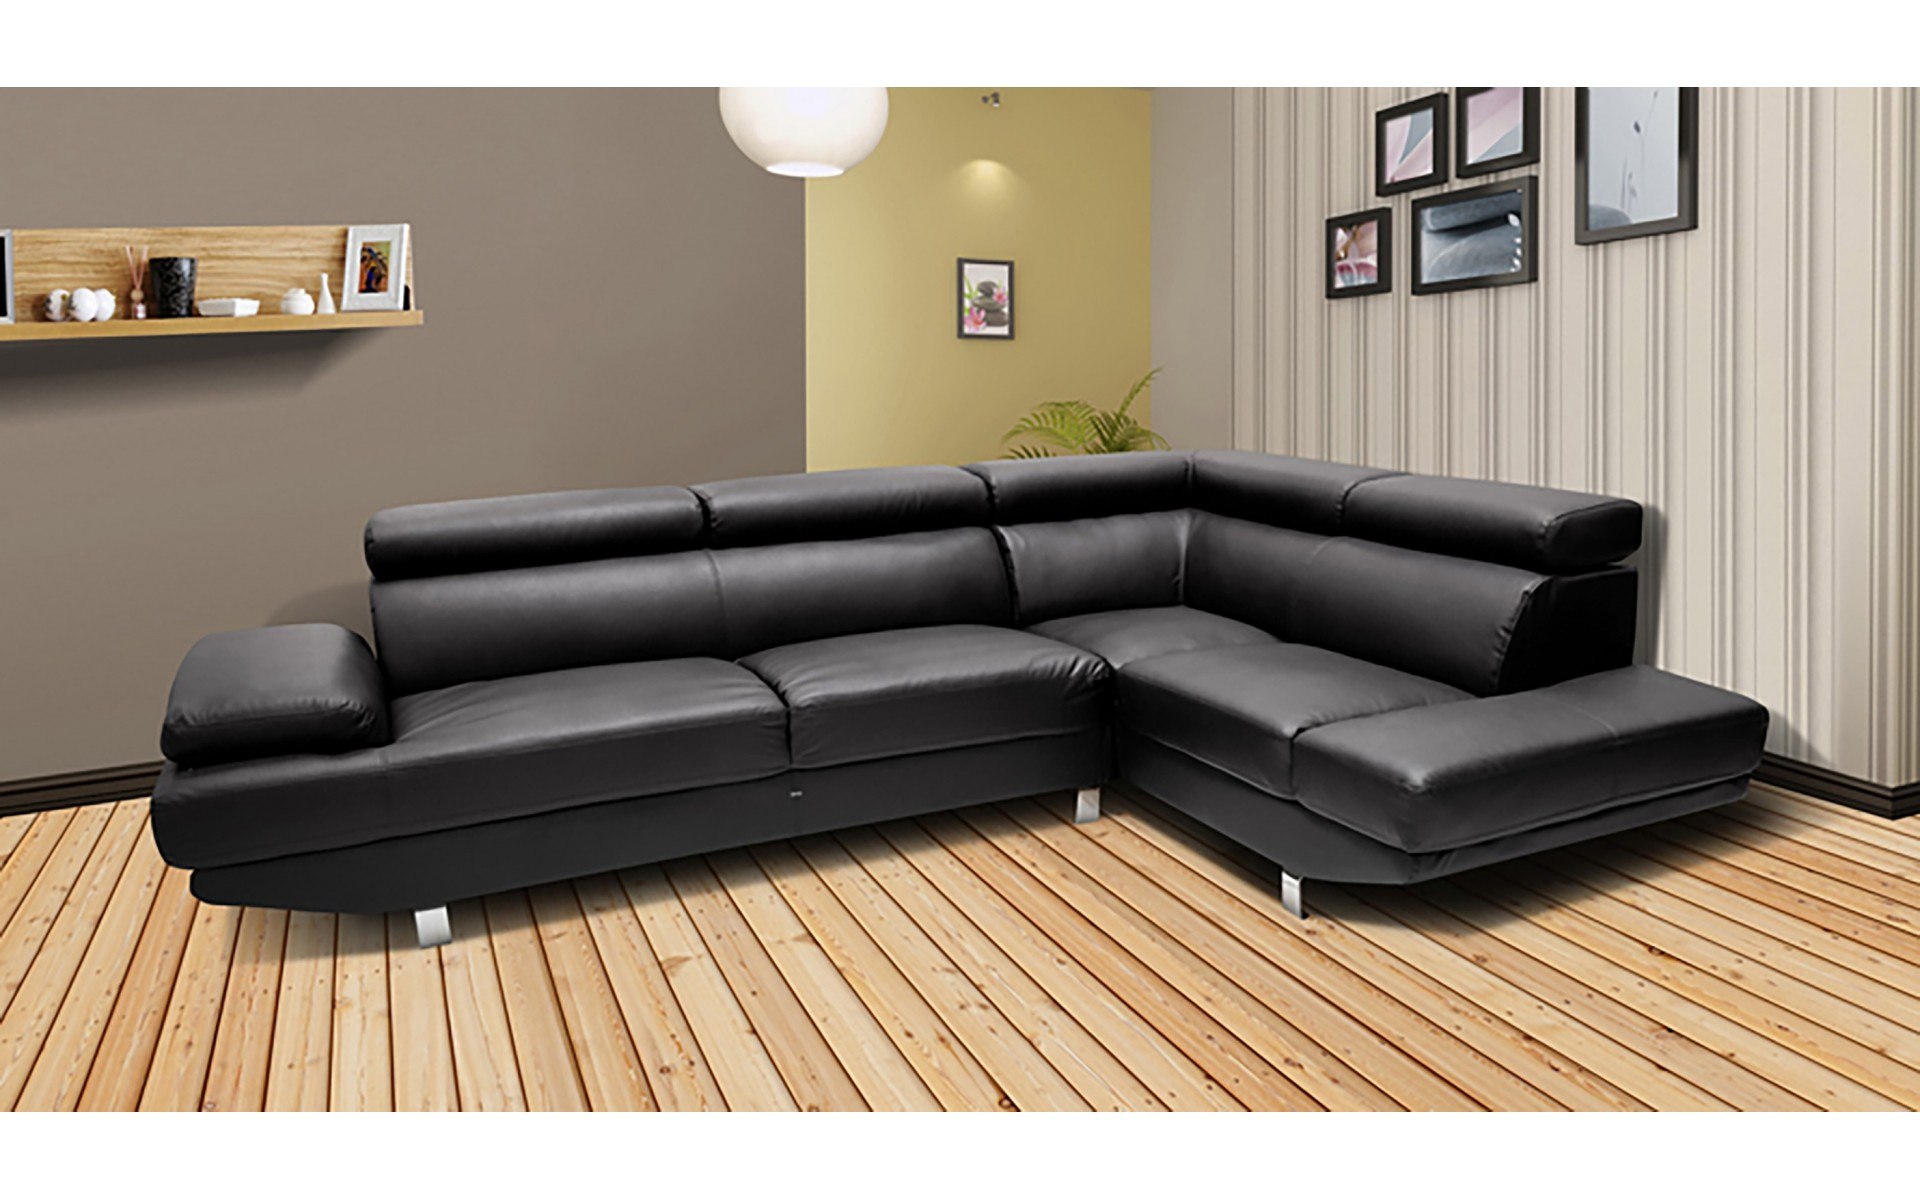 canap d angle carr royal sofa id e de canap et meuble maison. Black Bedroom Furniture Sets. Home Design Ideas